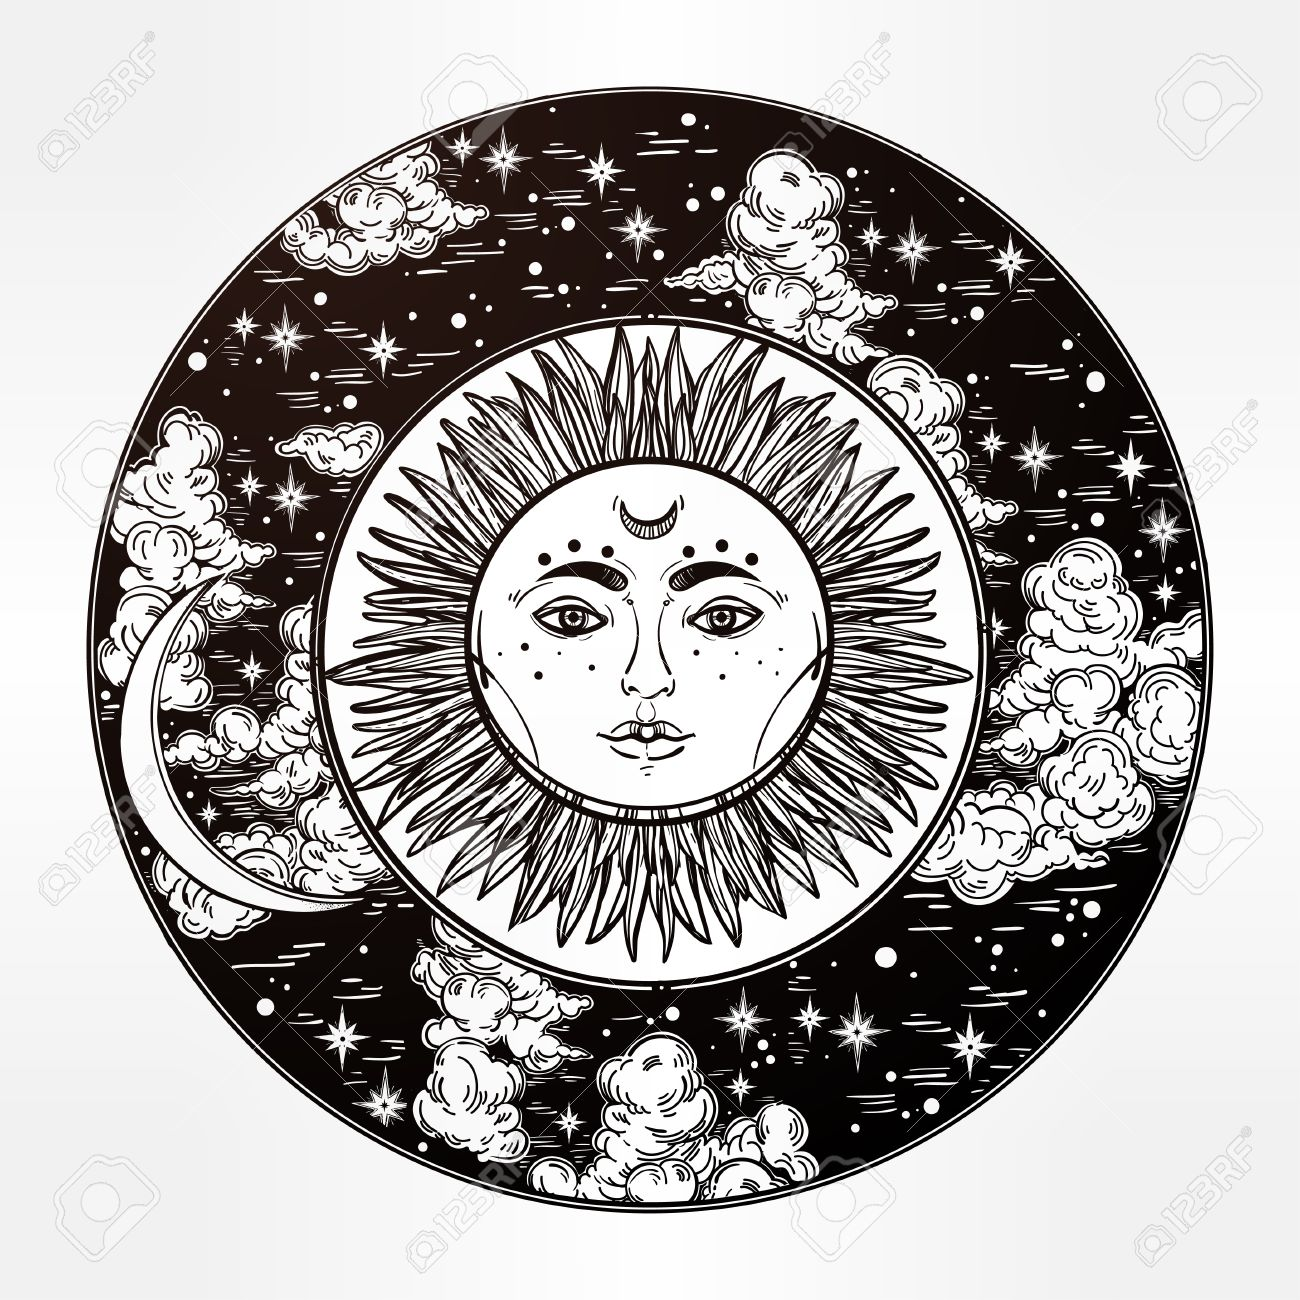 Hand drawn romantic beautiful round drawing of a night sky with sun and moon inside. Vector illustration isolated. Ethnic design, mystic tribal boho symbol for your use. Stock Vector - 59138426